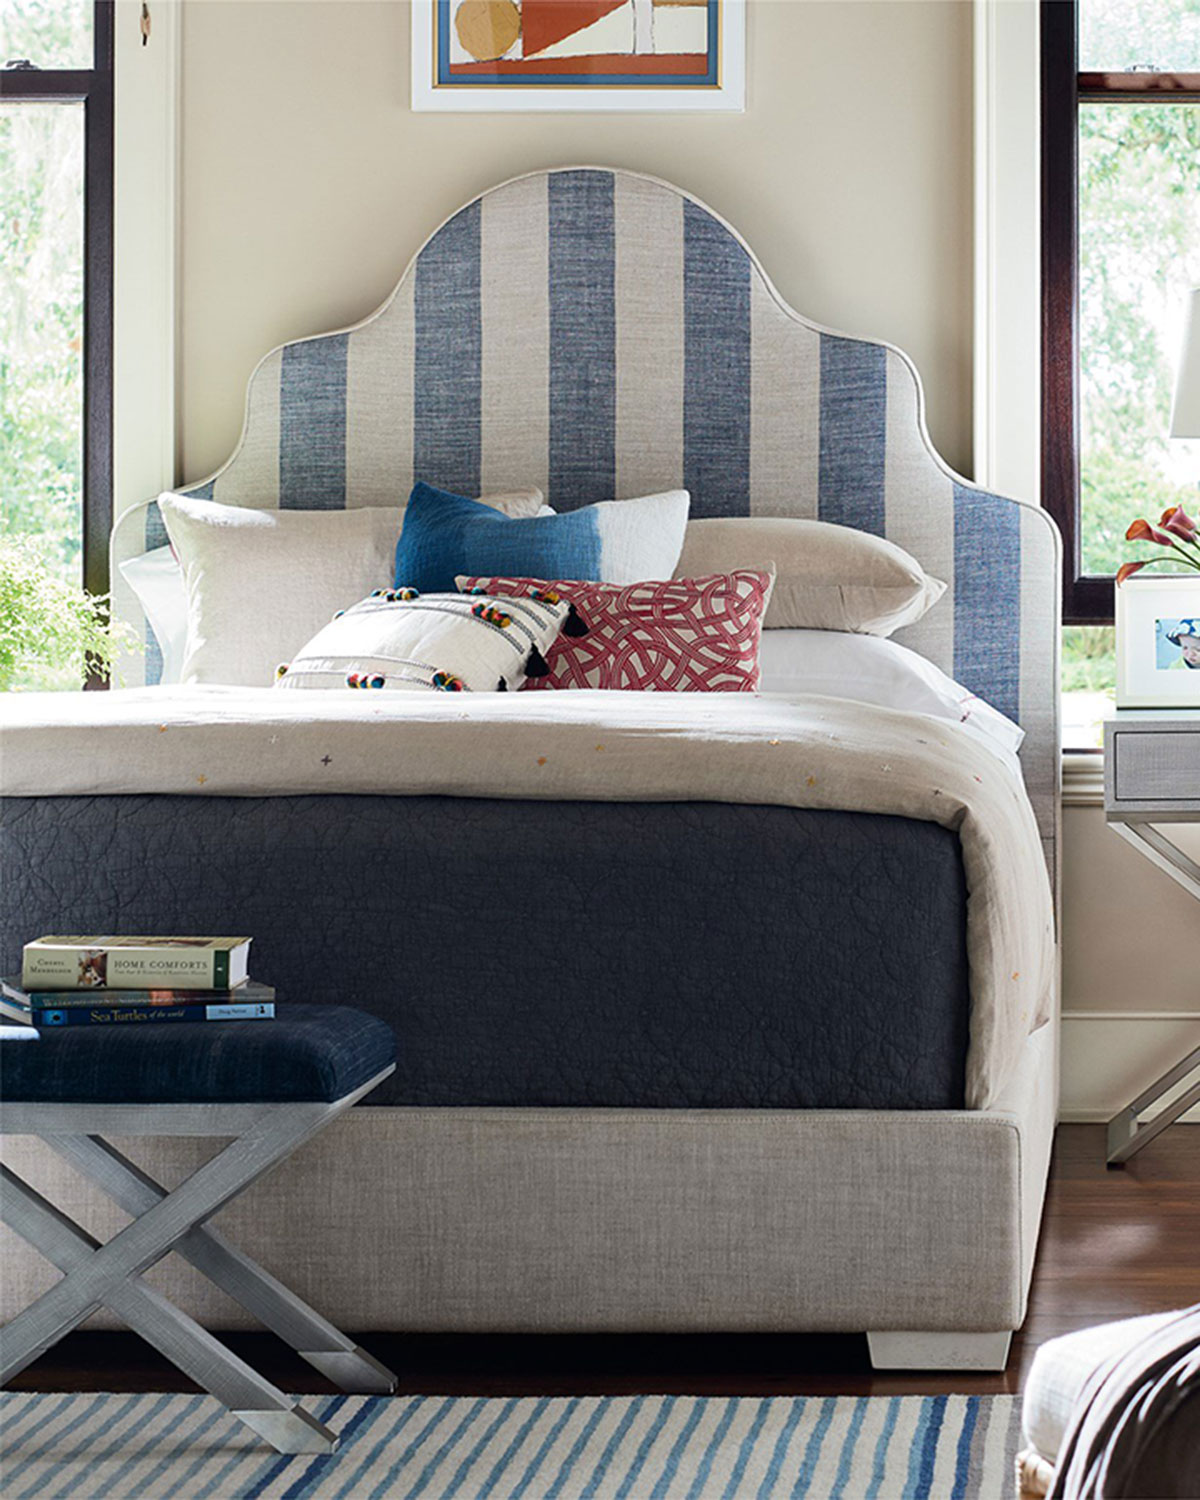 Summer Striped Queen Bed